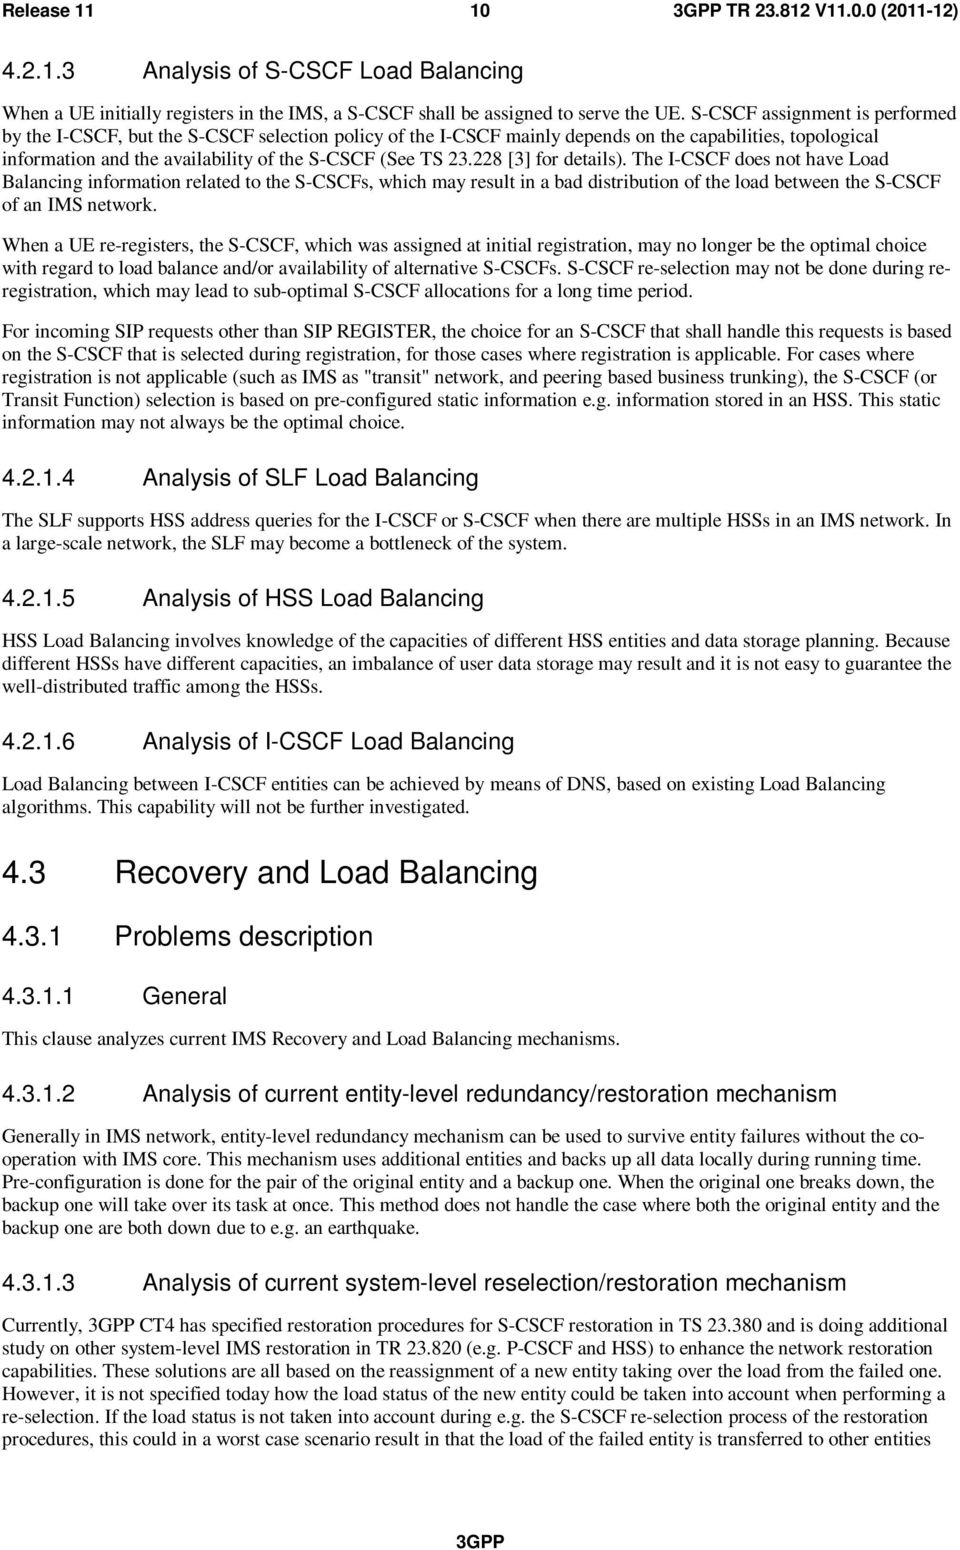 228 [3] for details). The I-CSCF does not have Load Balancing information related to the S-CSCFs, which may result in a bad distribution of the load between the S-CSCF of an IMS network.